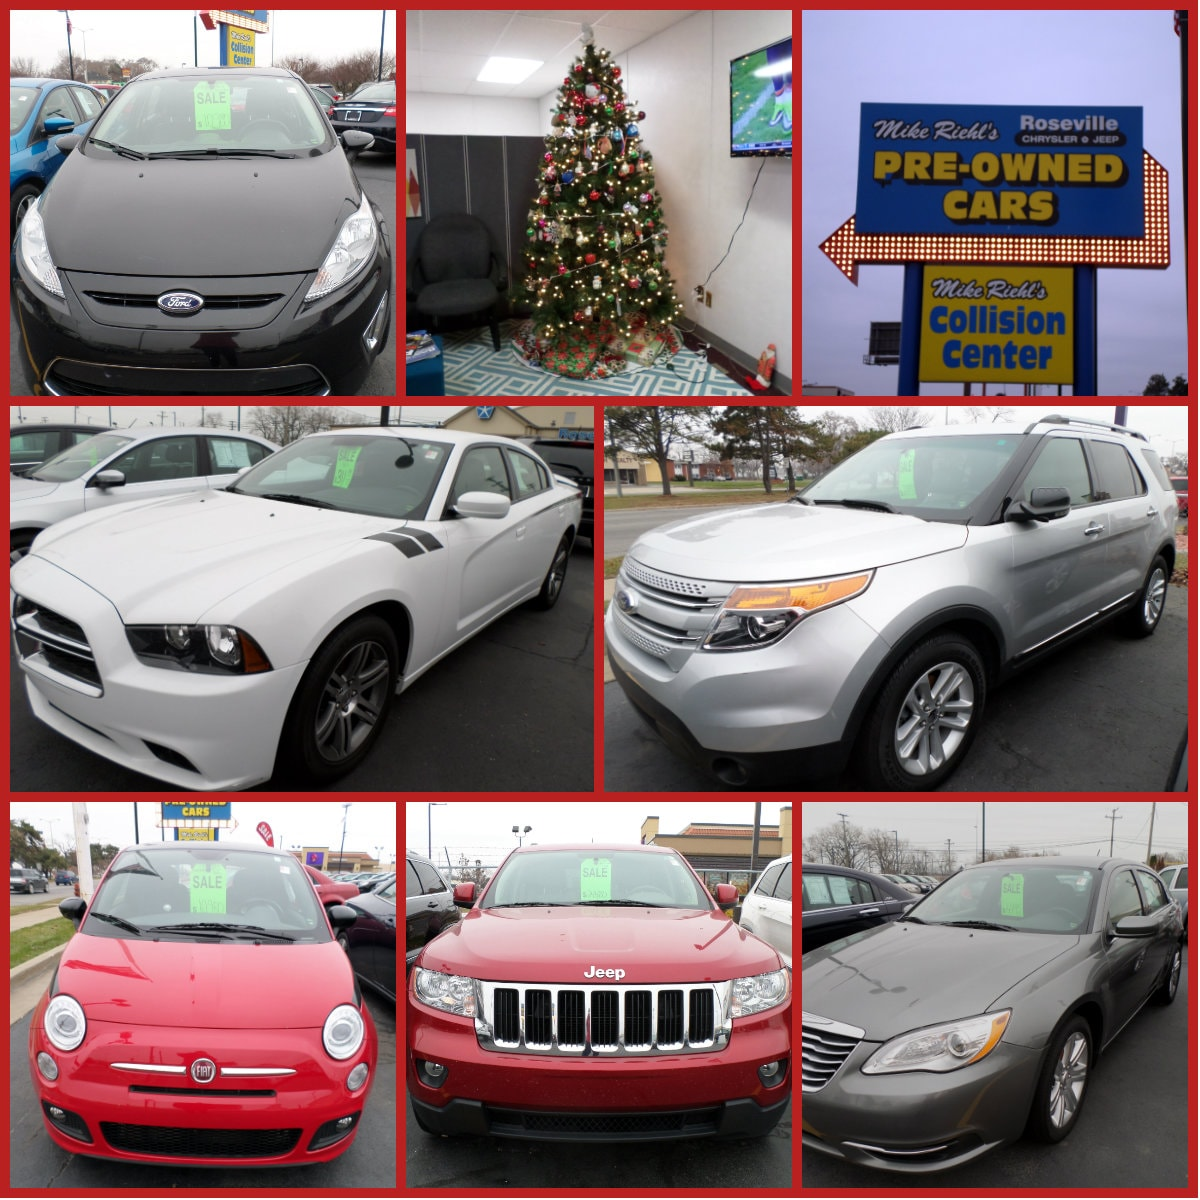 Mopar Fans: Get Your Holiday Shopping Done Here!